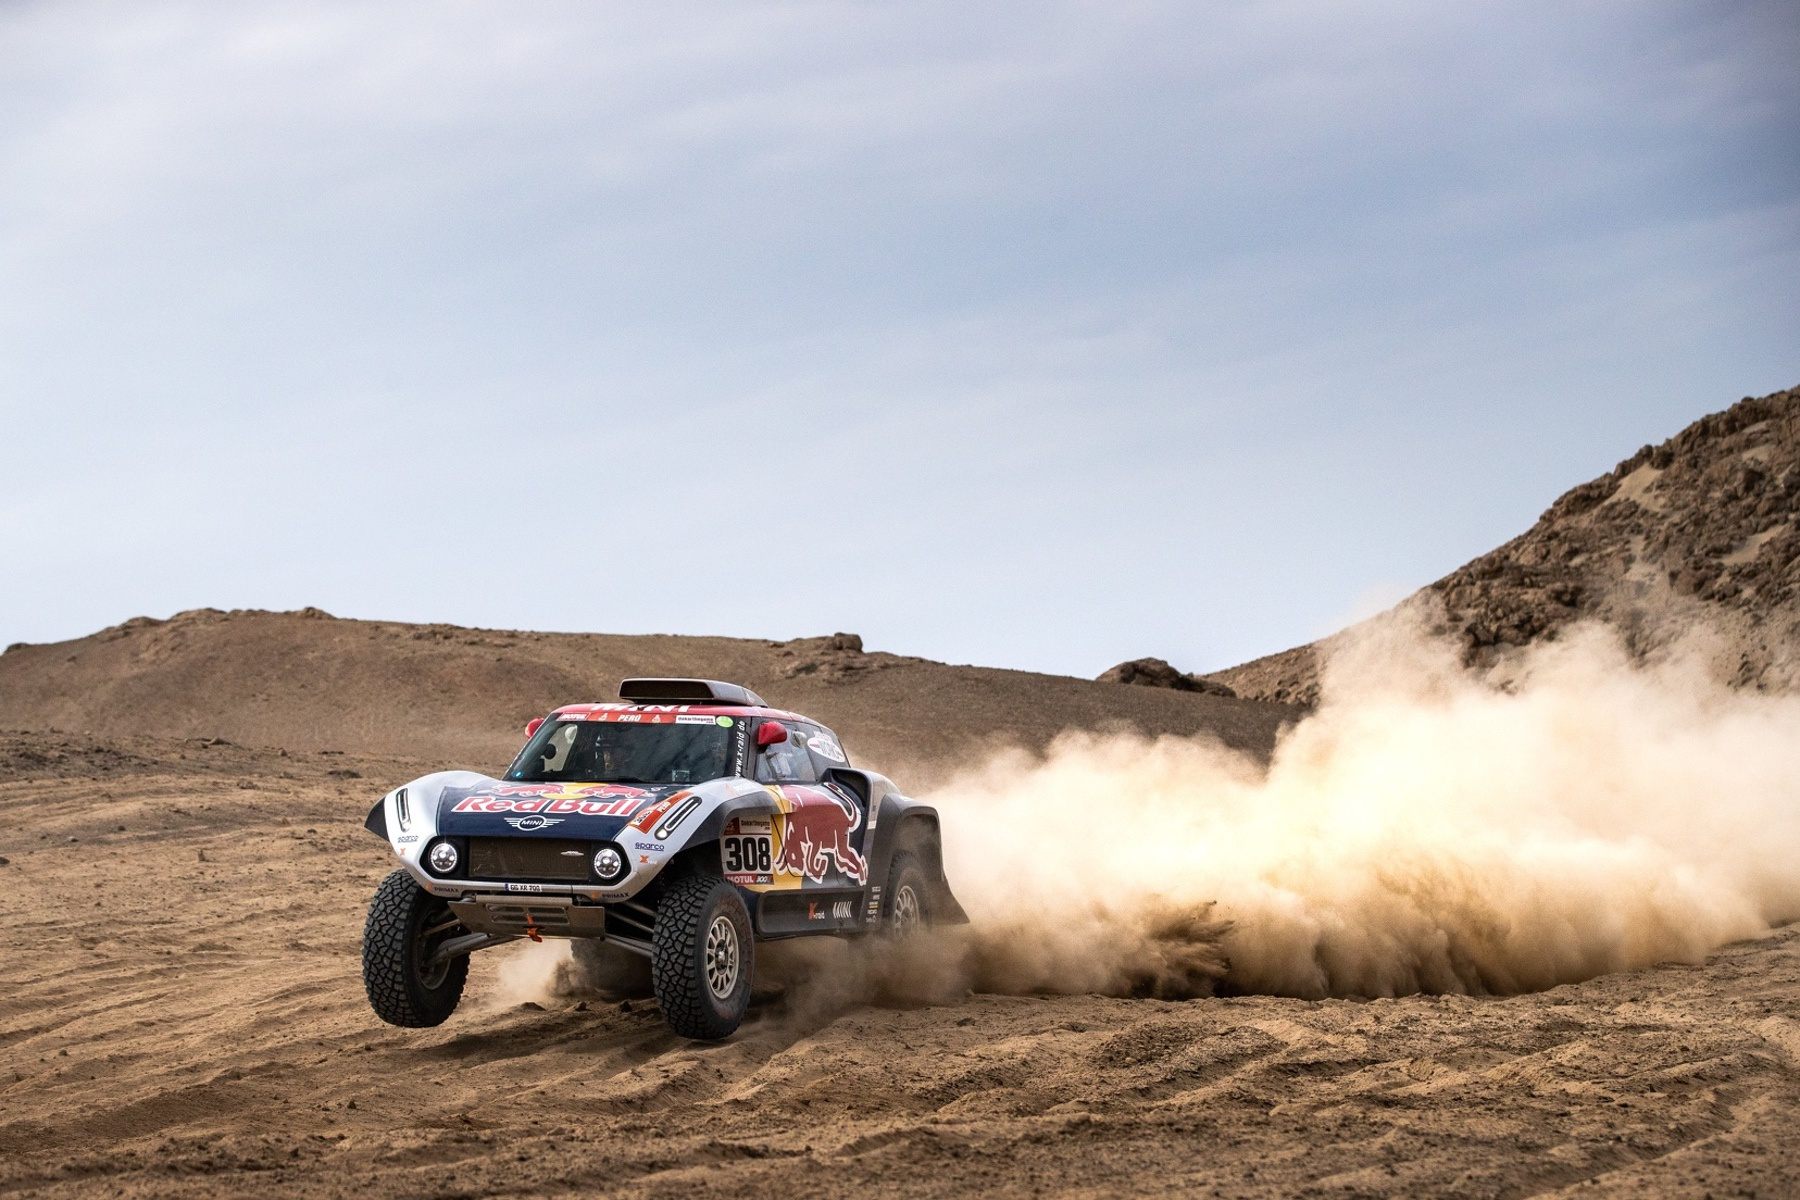 Dakar 2019 Stage 3 Mini Wins Stage 3 And Moves To 3rd Overall